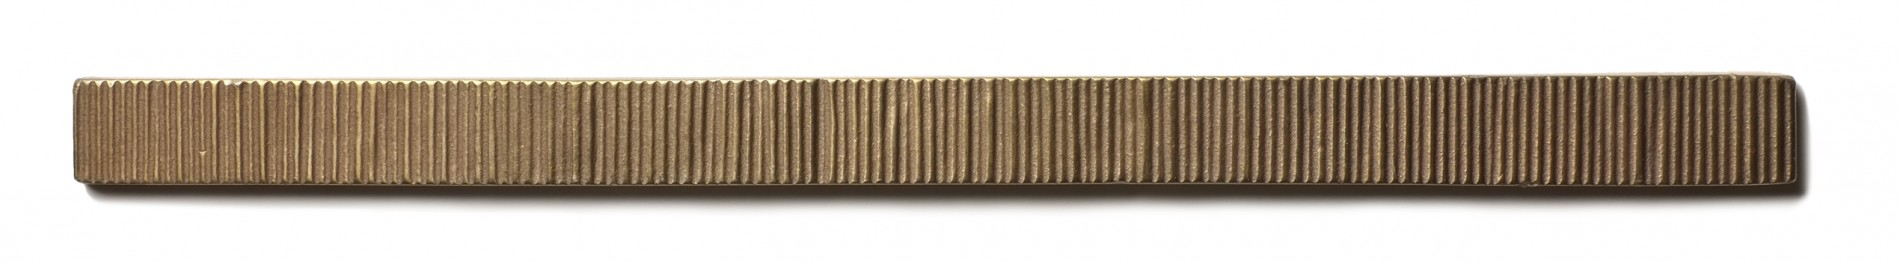 Beach Grass Liner 0.75x12 inch accent liner  Traditional Bronze